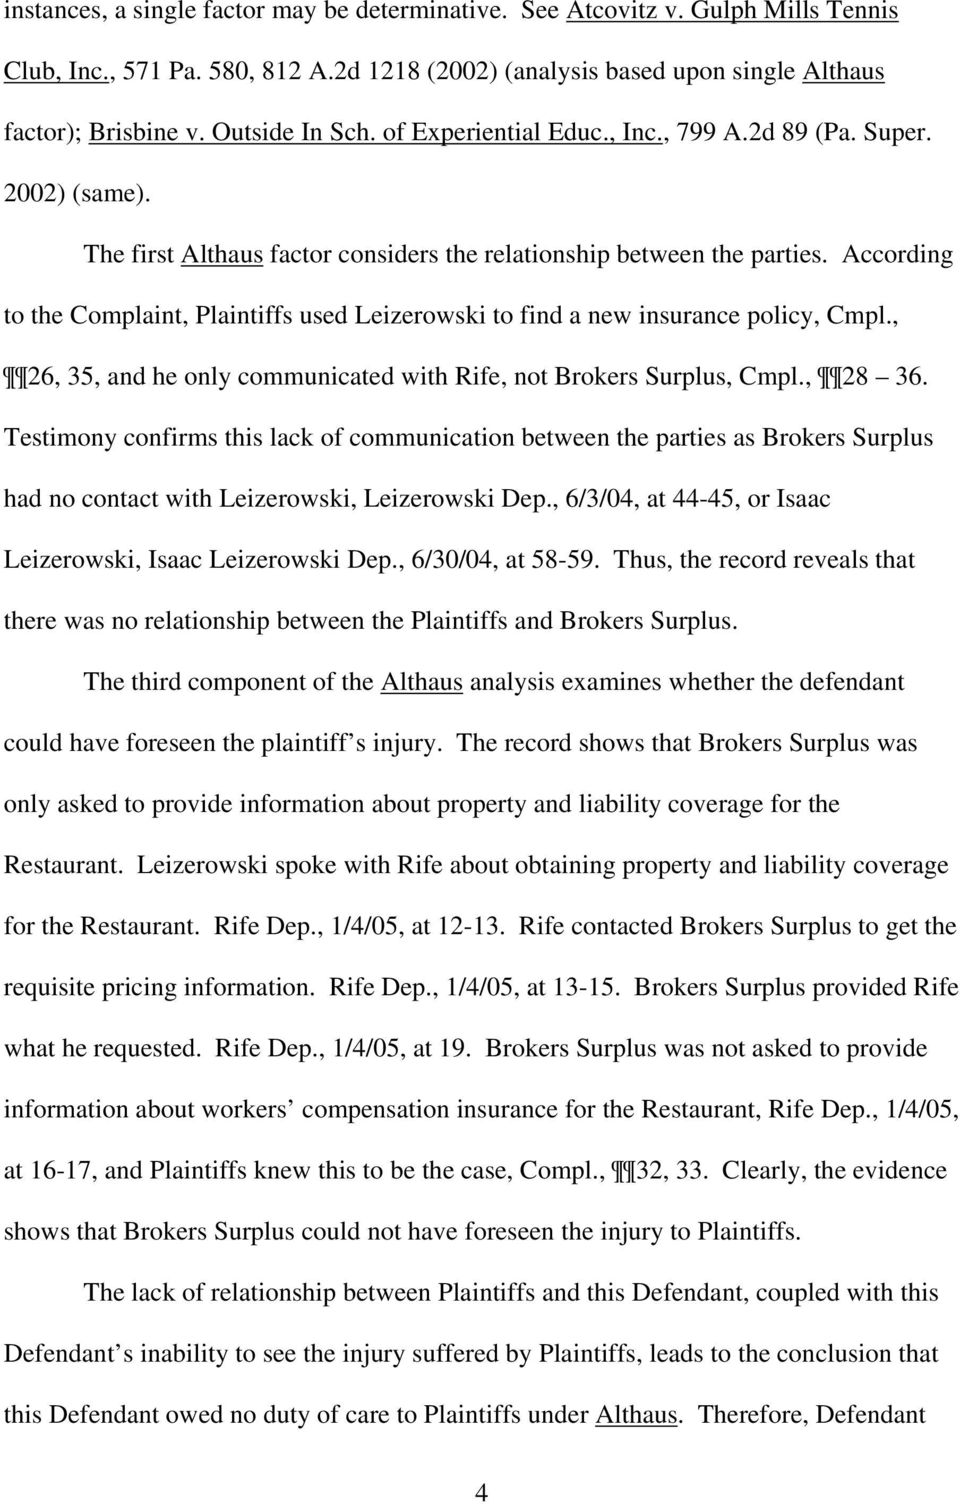 According to the Complaint, Plaintiffs used Leizerowski to find a new insurance policy, Cmpl., 26, 35, and he only communicated with Rife, not Brokers Surplus, Cmpl., 28 36.